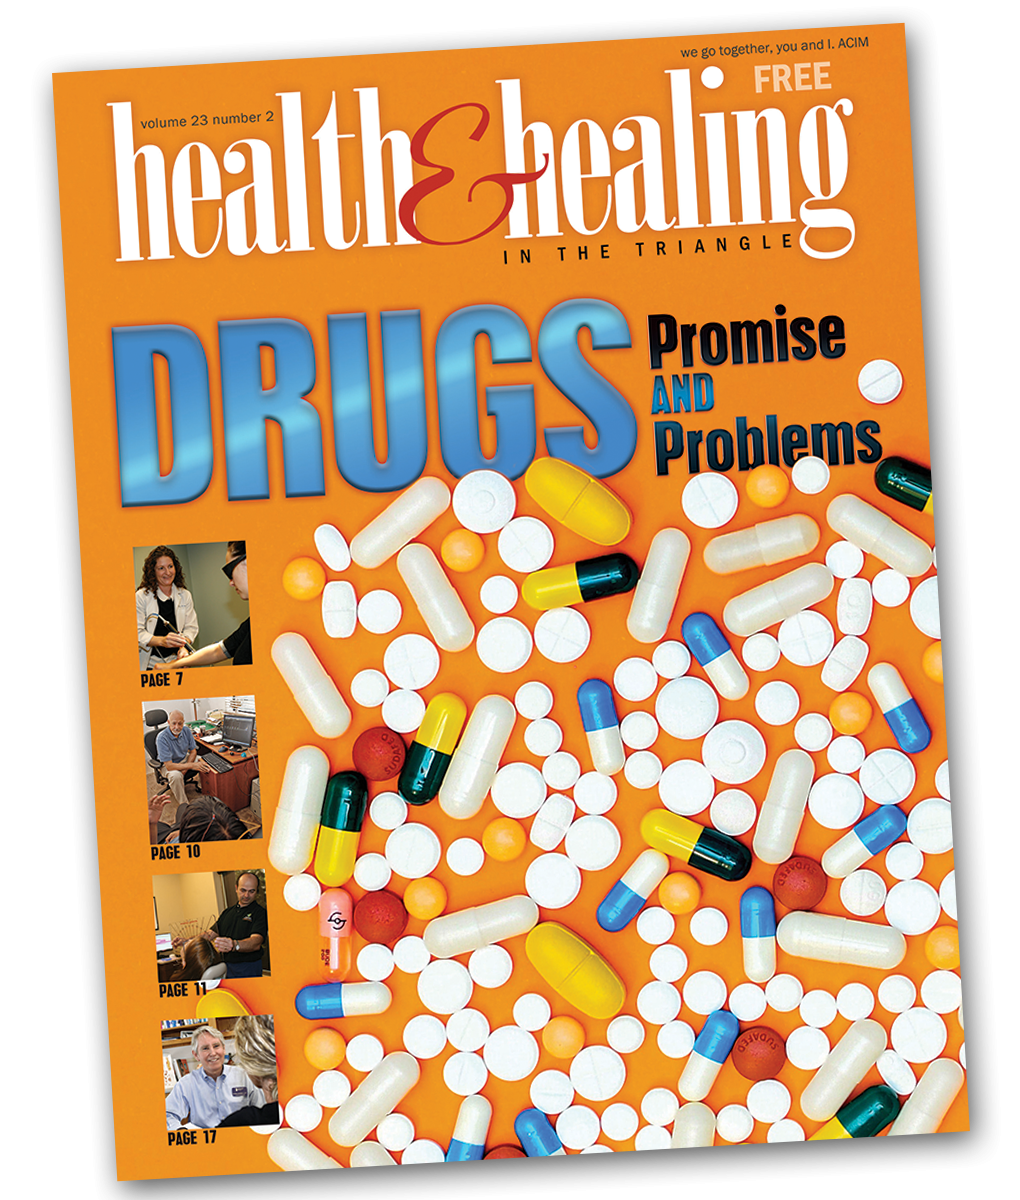 health & healing cover